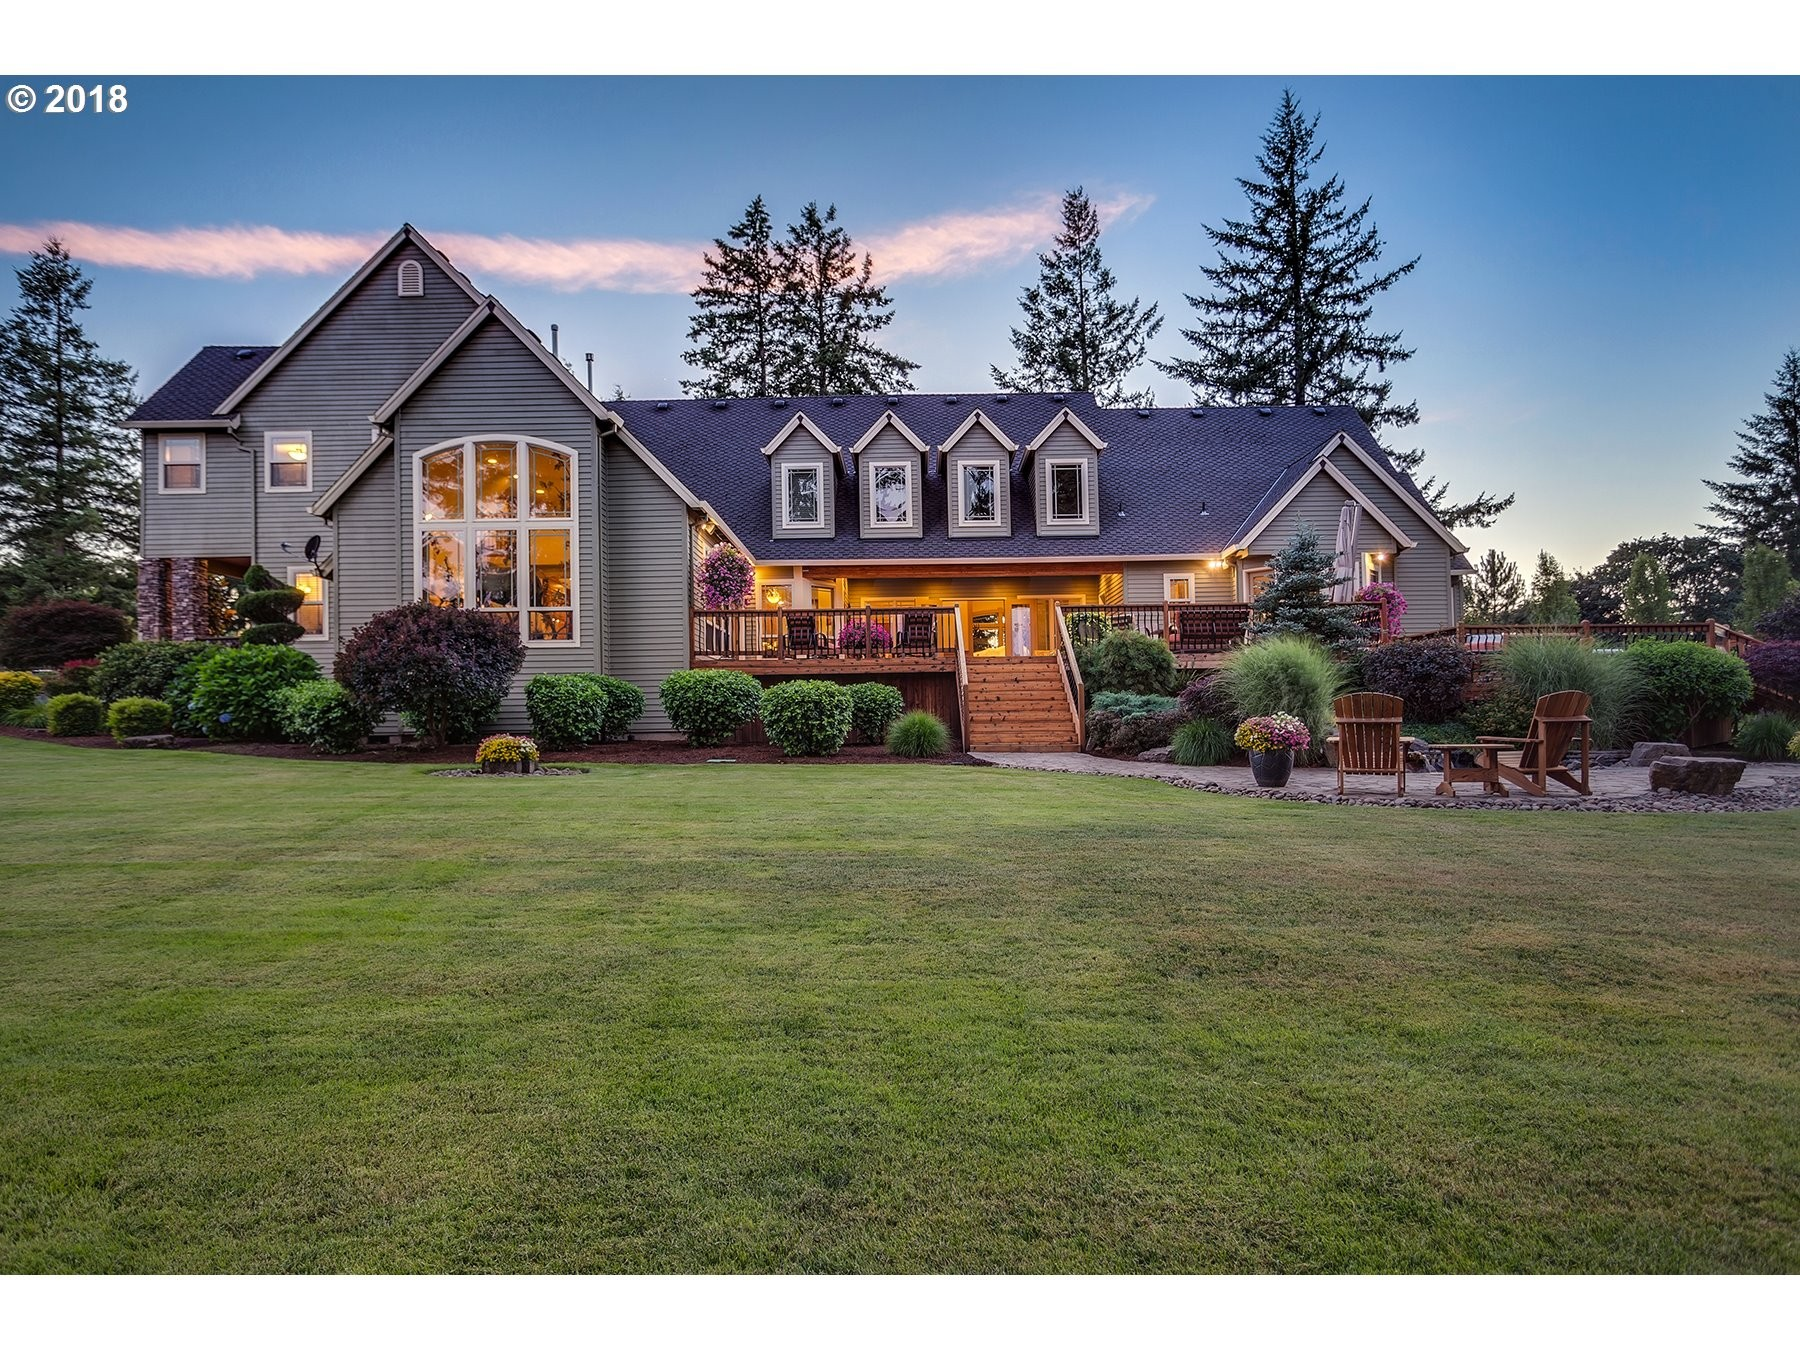 21094 s meadowridge ct a luxury single family home for sale in oregon city, oregon property id 19362628 christie s international real estate